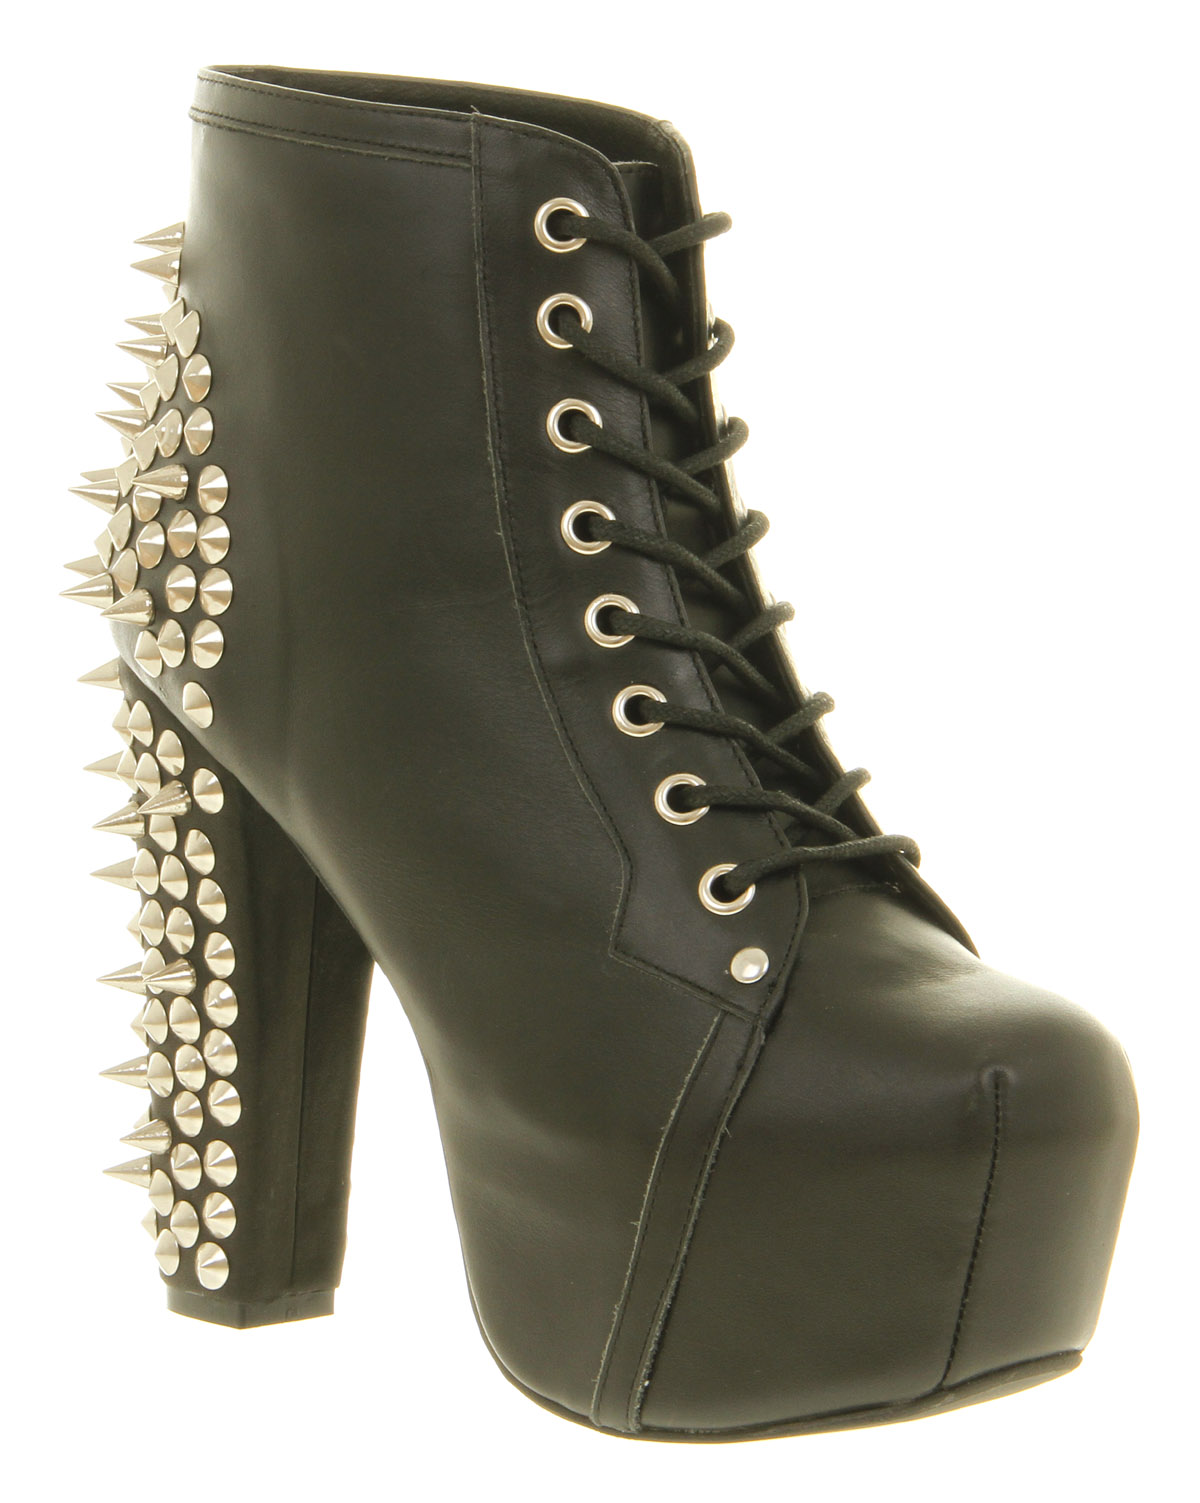 womens jeffrey campbell lita platform black spiked leather ankle boot shoes ebay. Black Bedroom Furniture Sets. Home Design Ideas